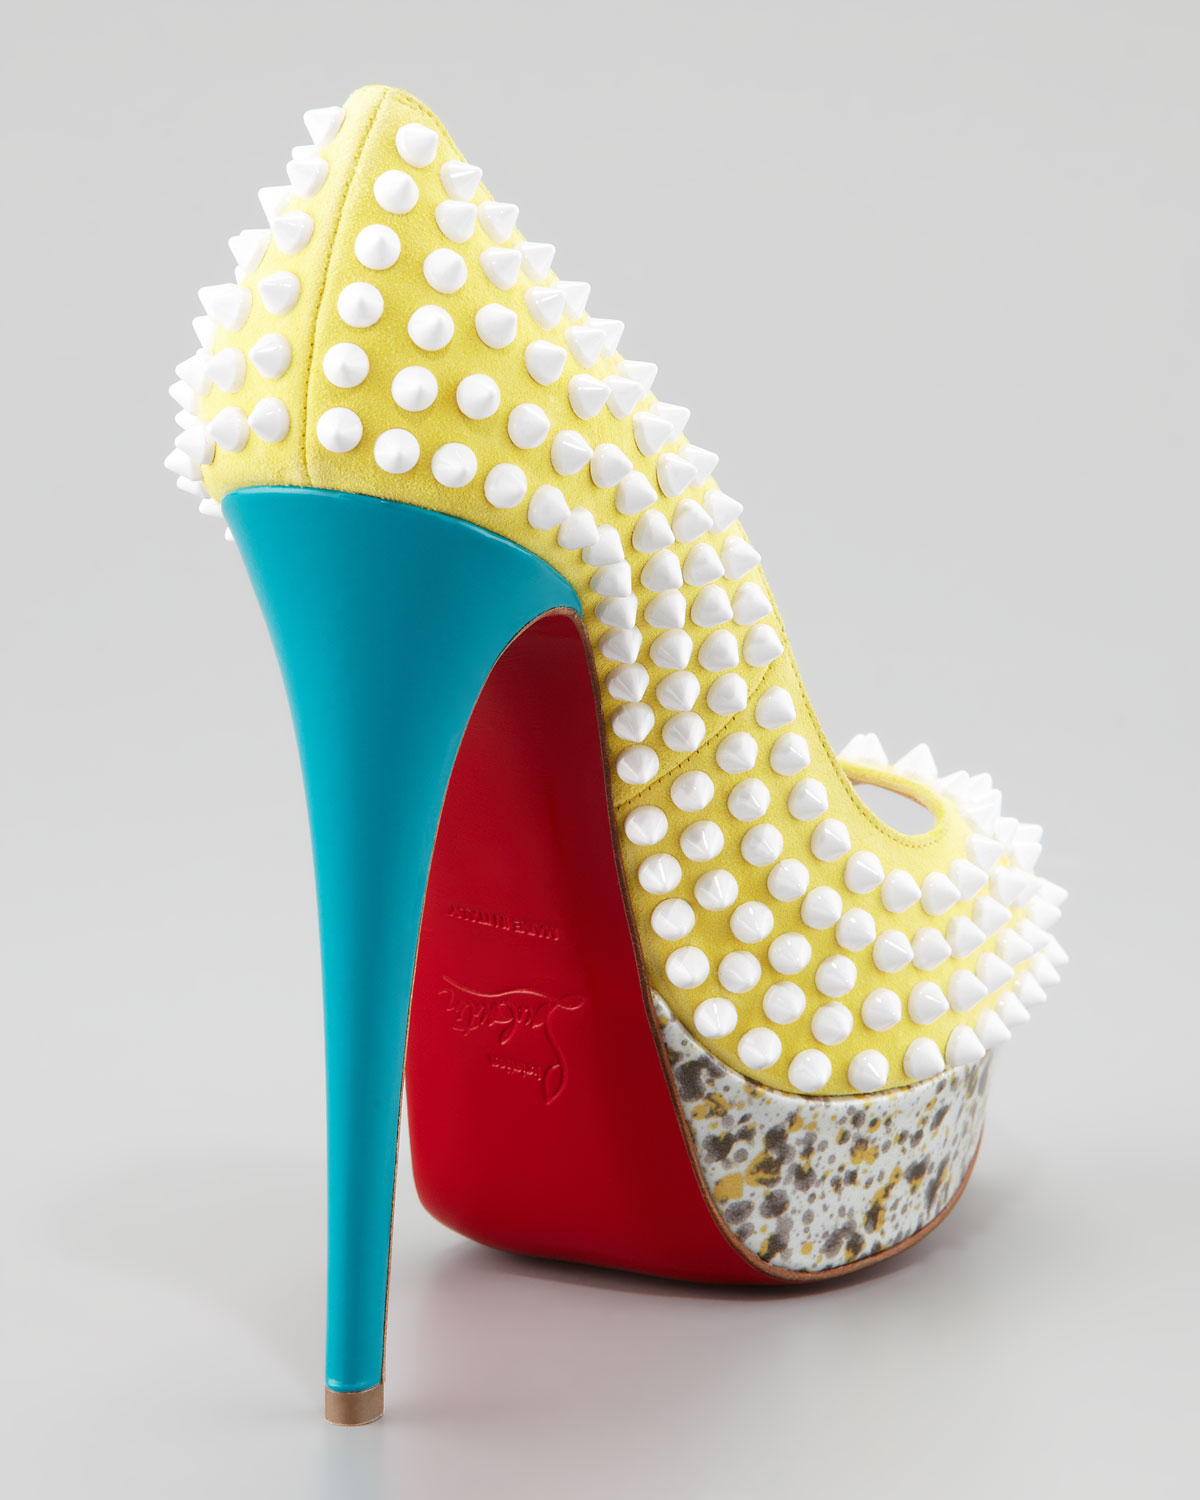 knock off mens shoes - christian louboutin lady peep toe spikes 150 pumps | Landenberg ...